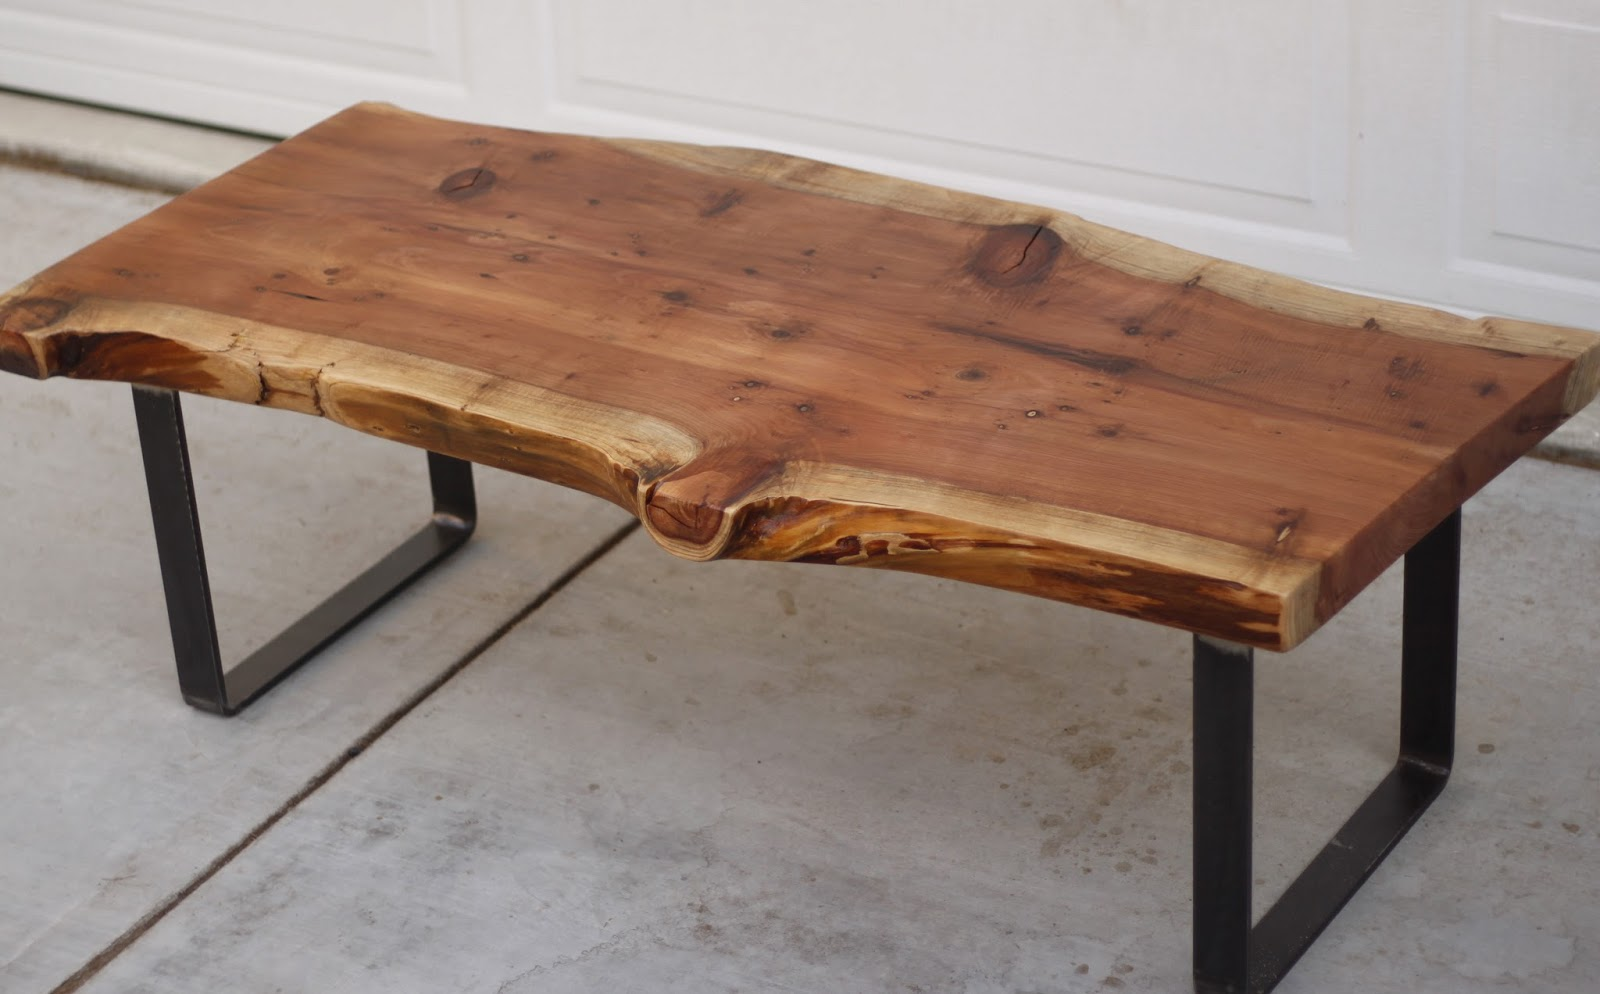 Arbor Exchange | Reclaimed Wood Furniture: Redwood Slab ...